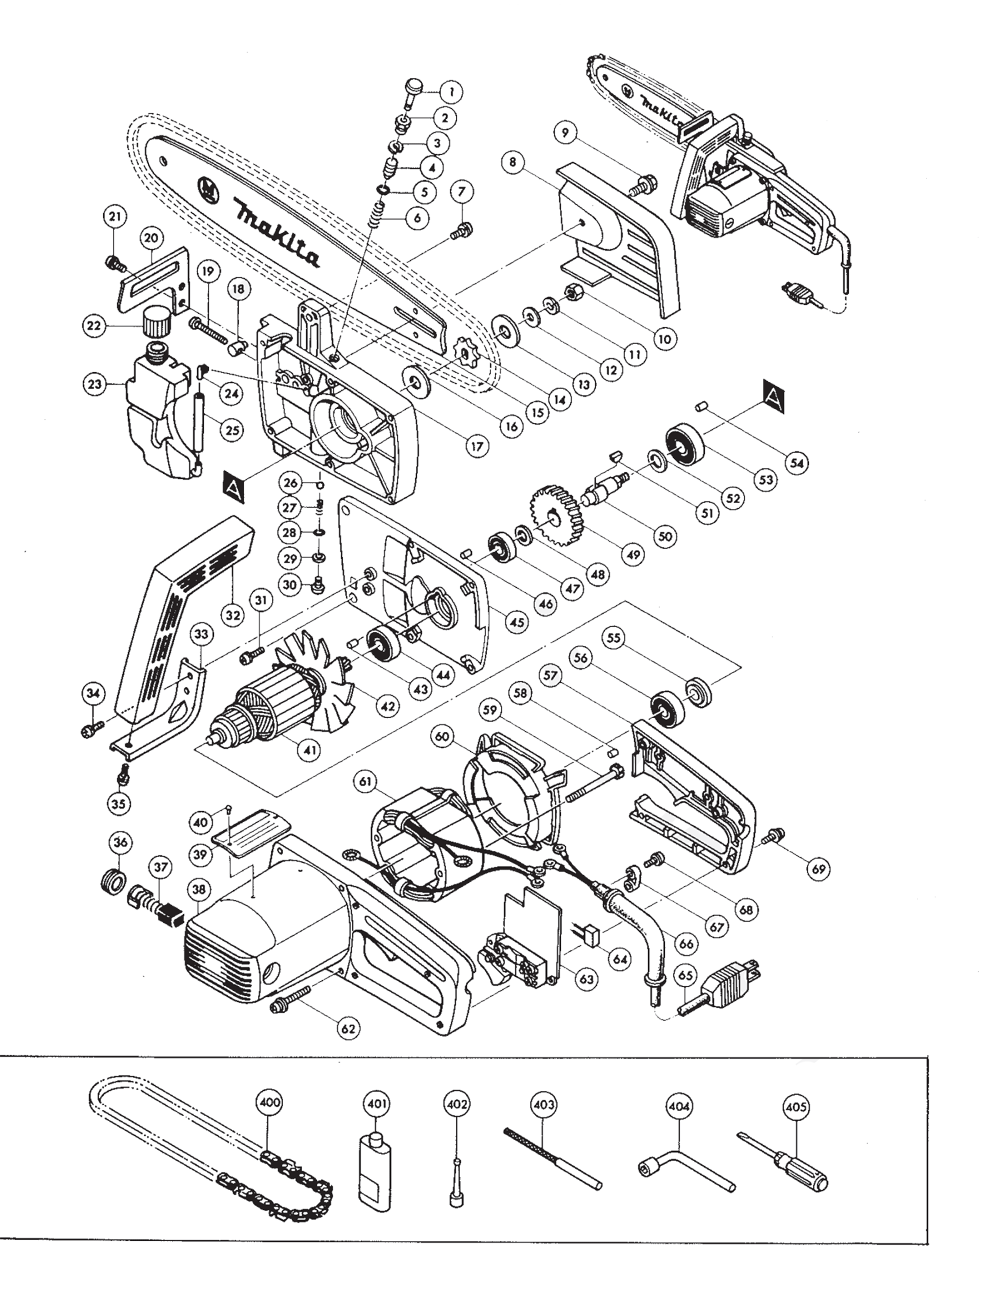 Buy Makita 5014b Replacement Tool Parts A Href Wilton 205m3 List And Diagram Ereplacementpartscom Schematic